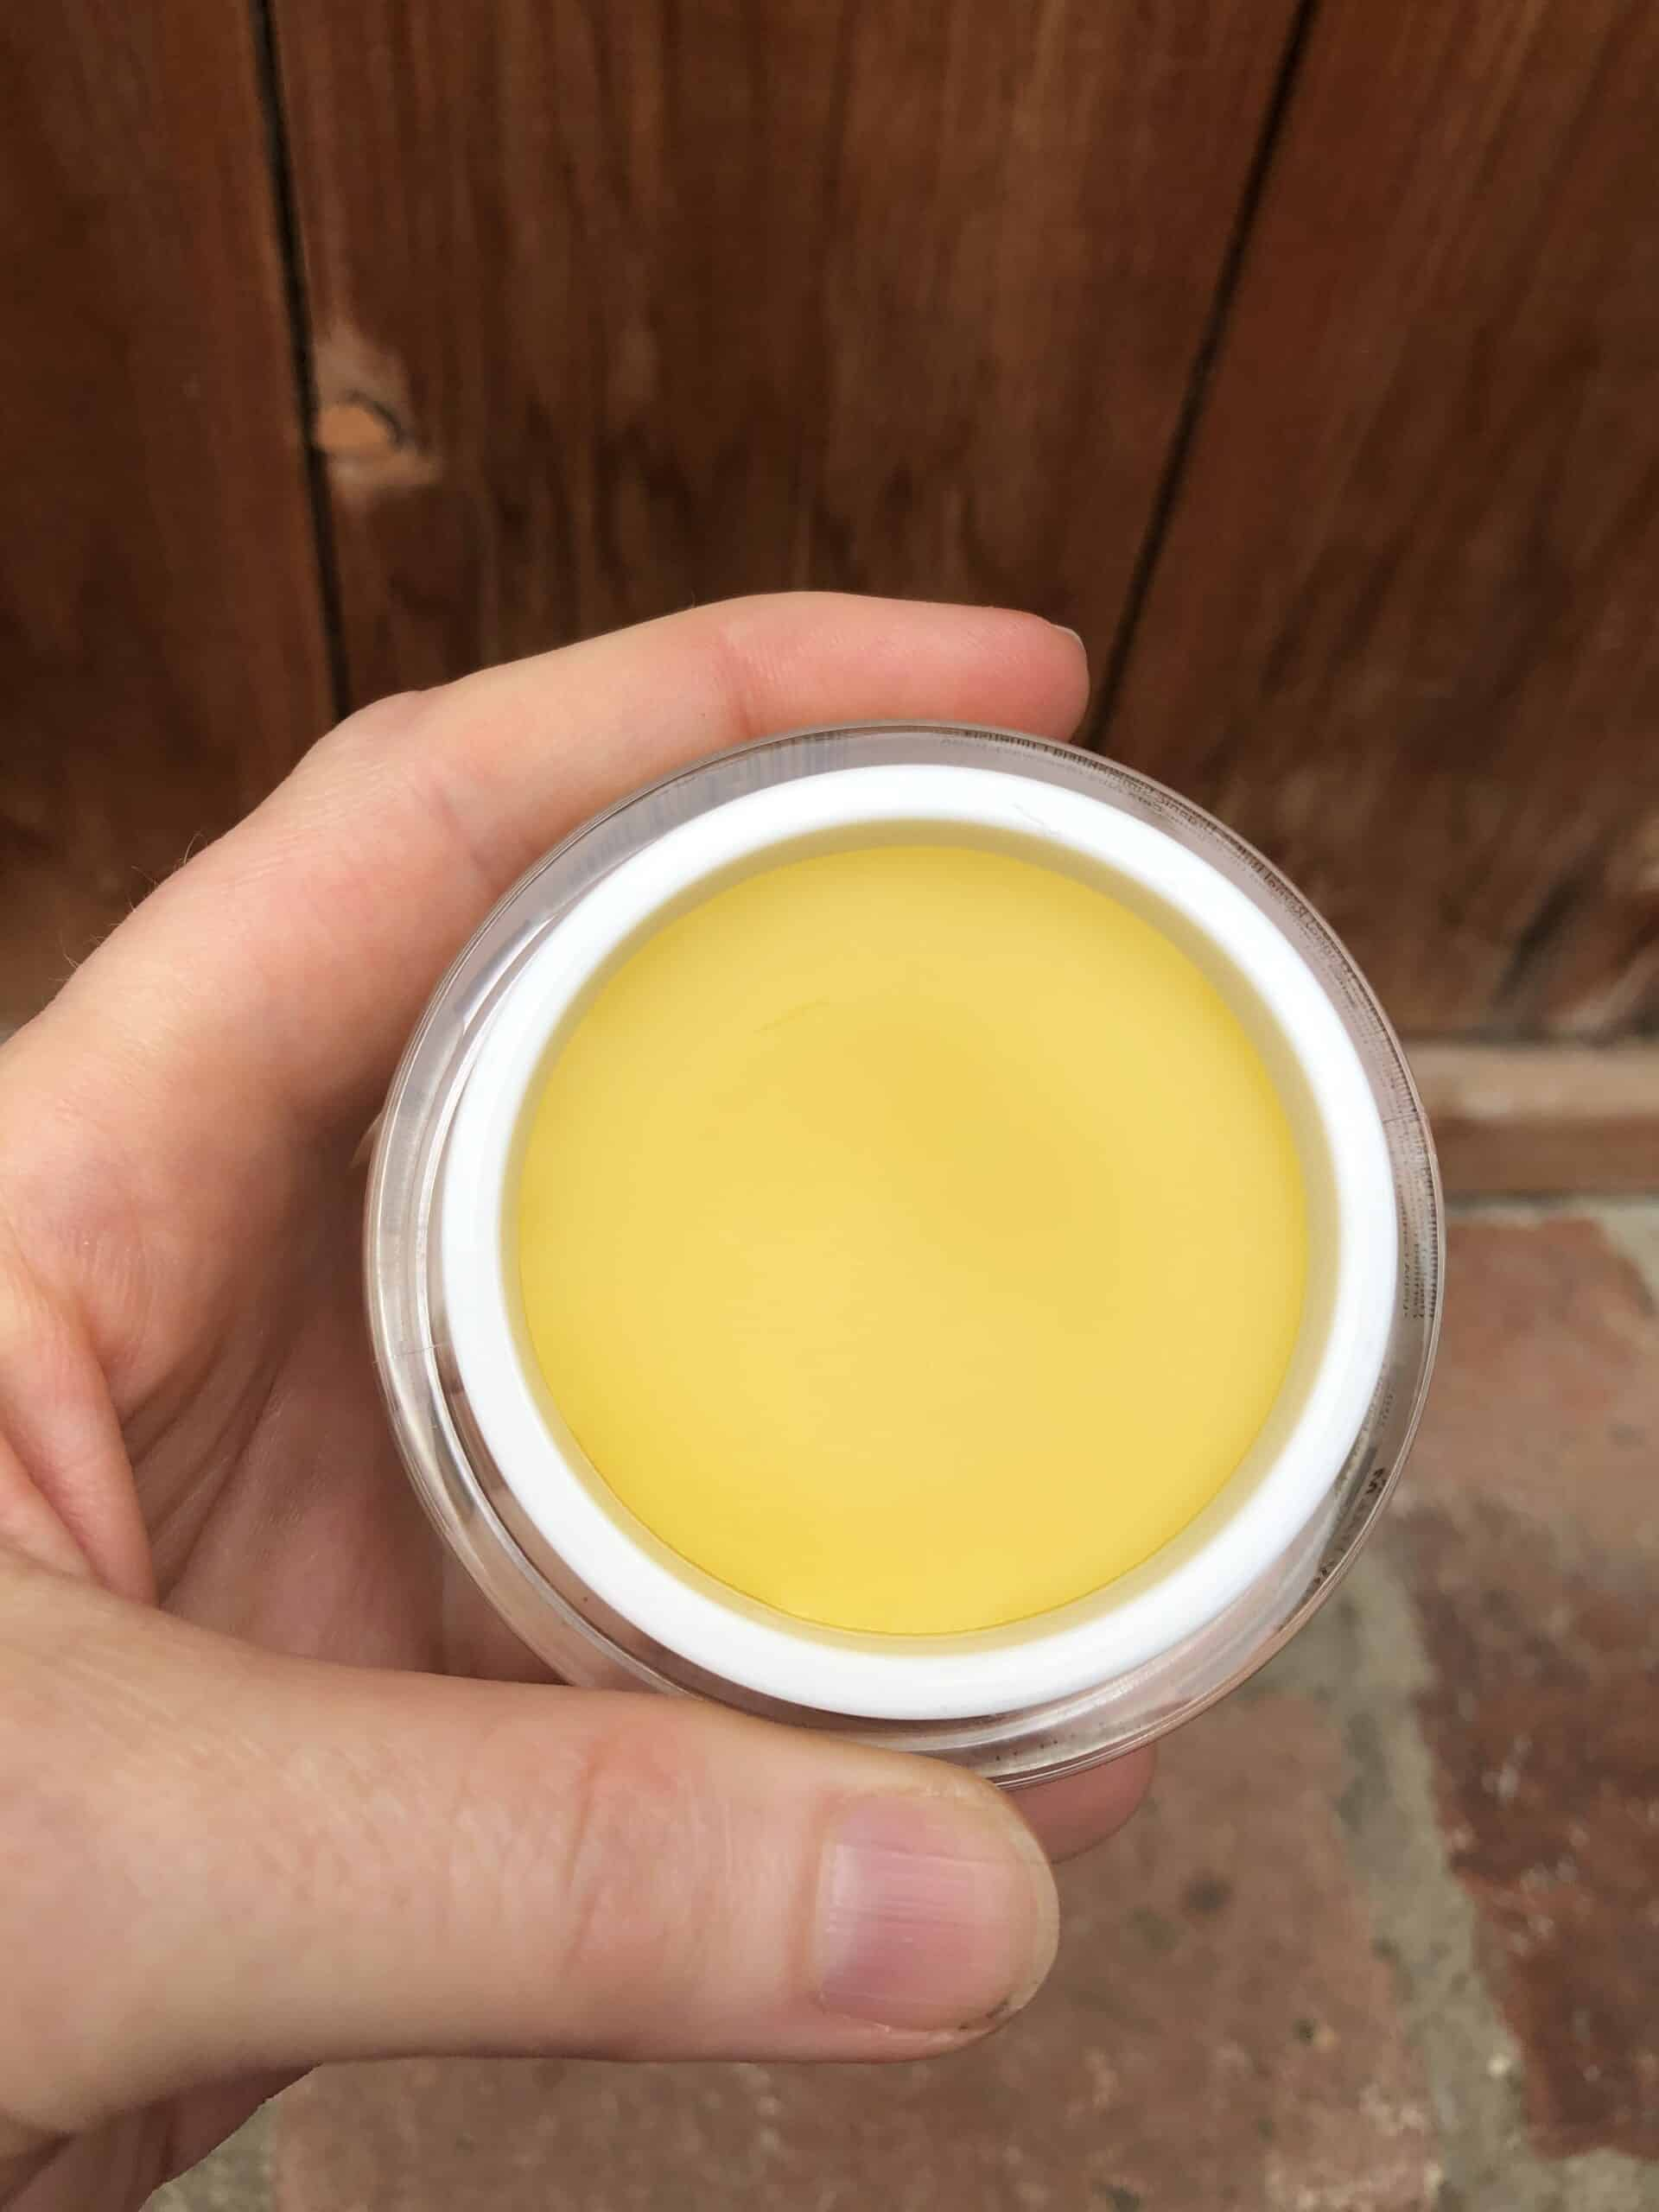 aspen green pain relief body balm review save on cannabis testing process